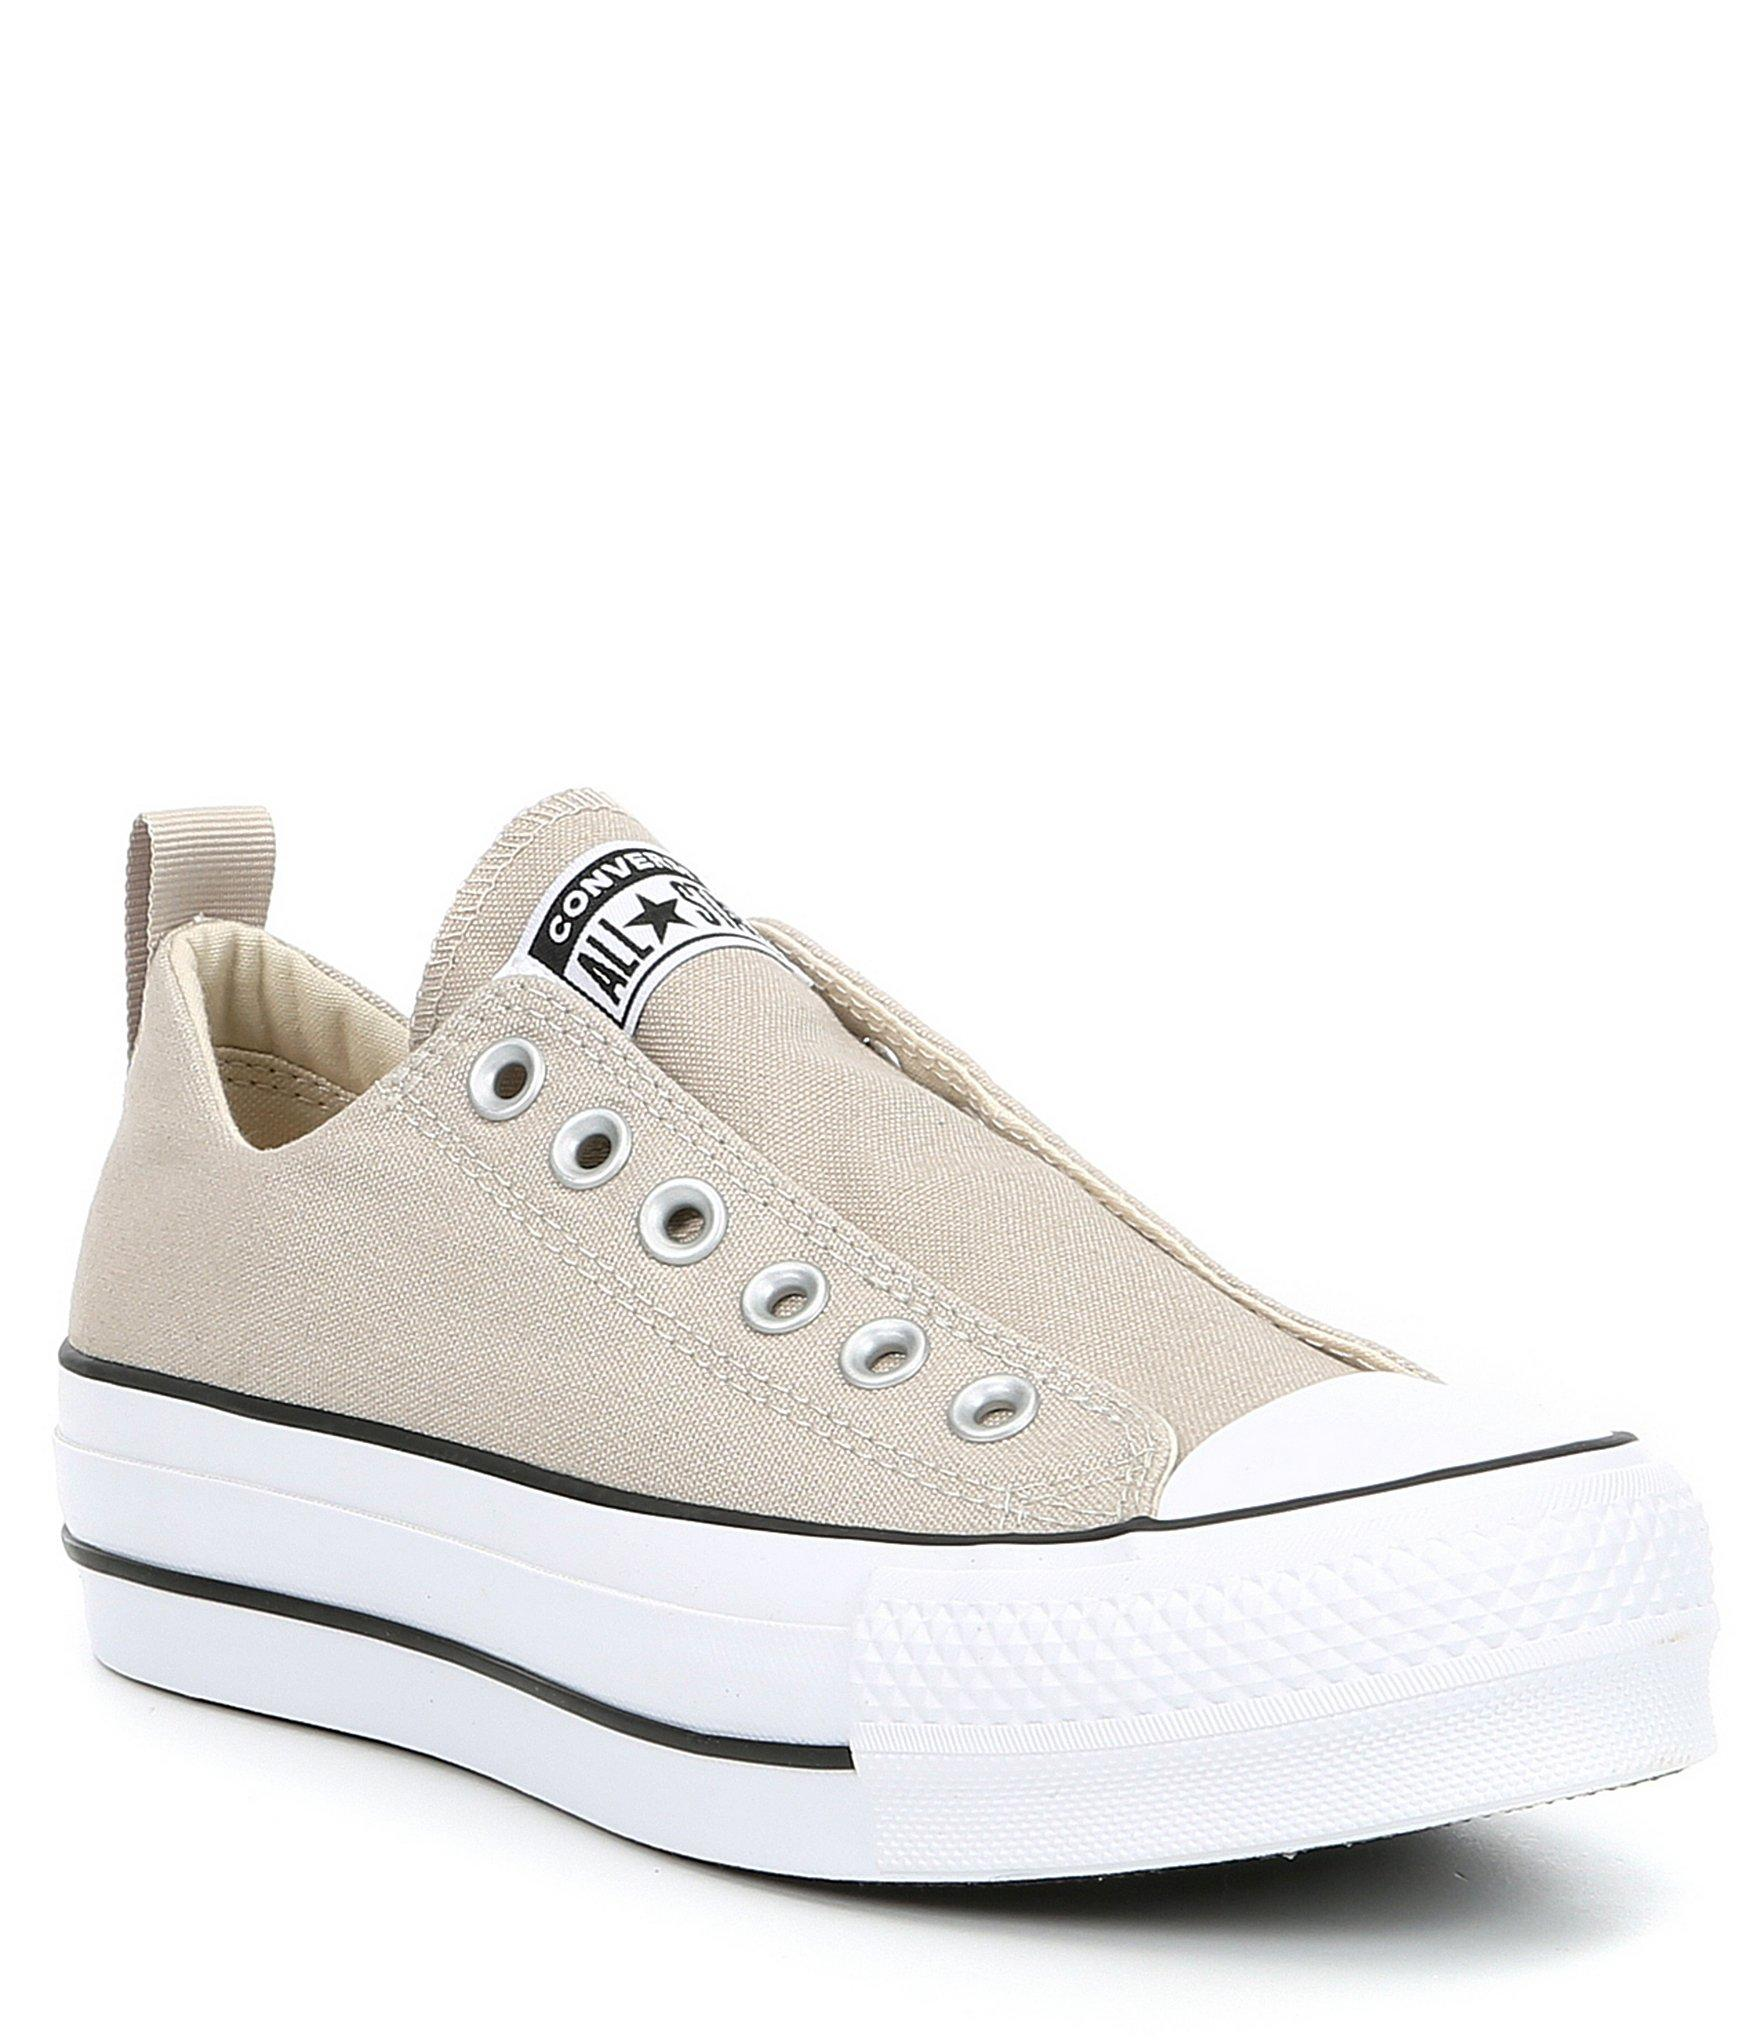 ae2d6c023192 Converse. White Women s Chuck Taylor All Star Laceless Platform Sneakers